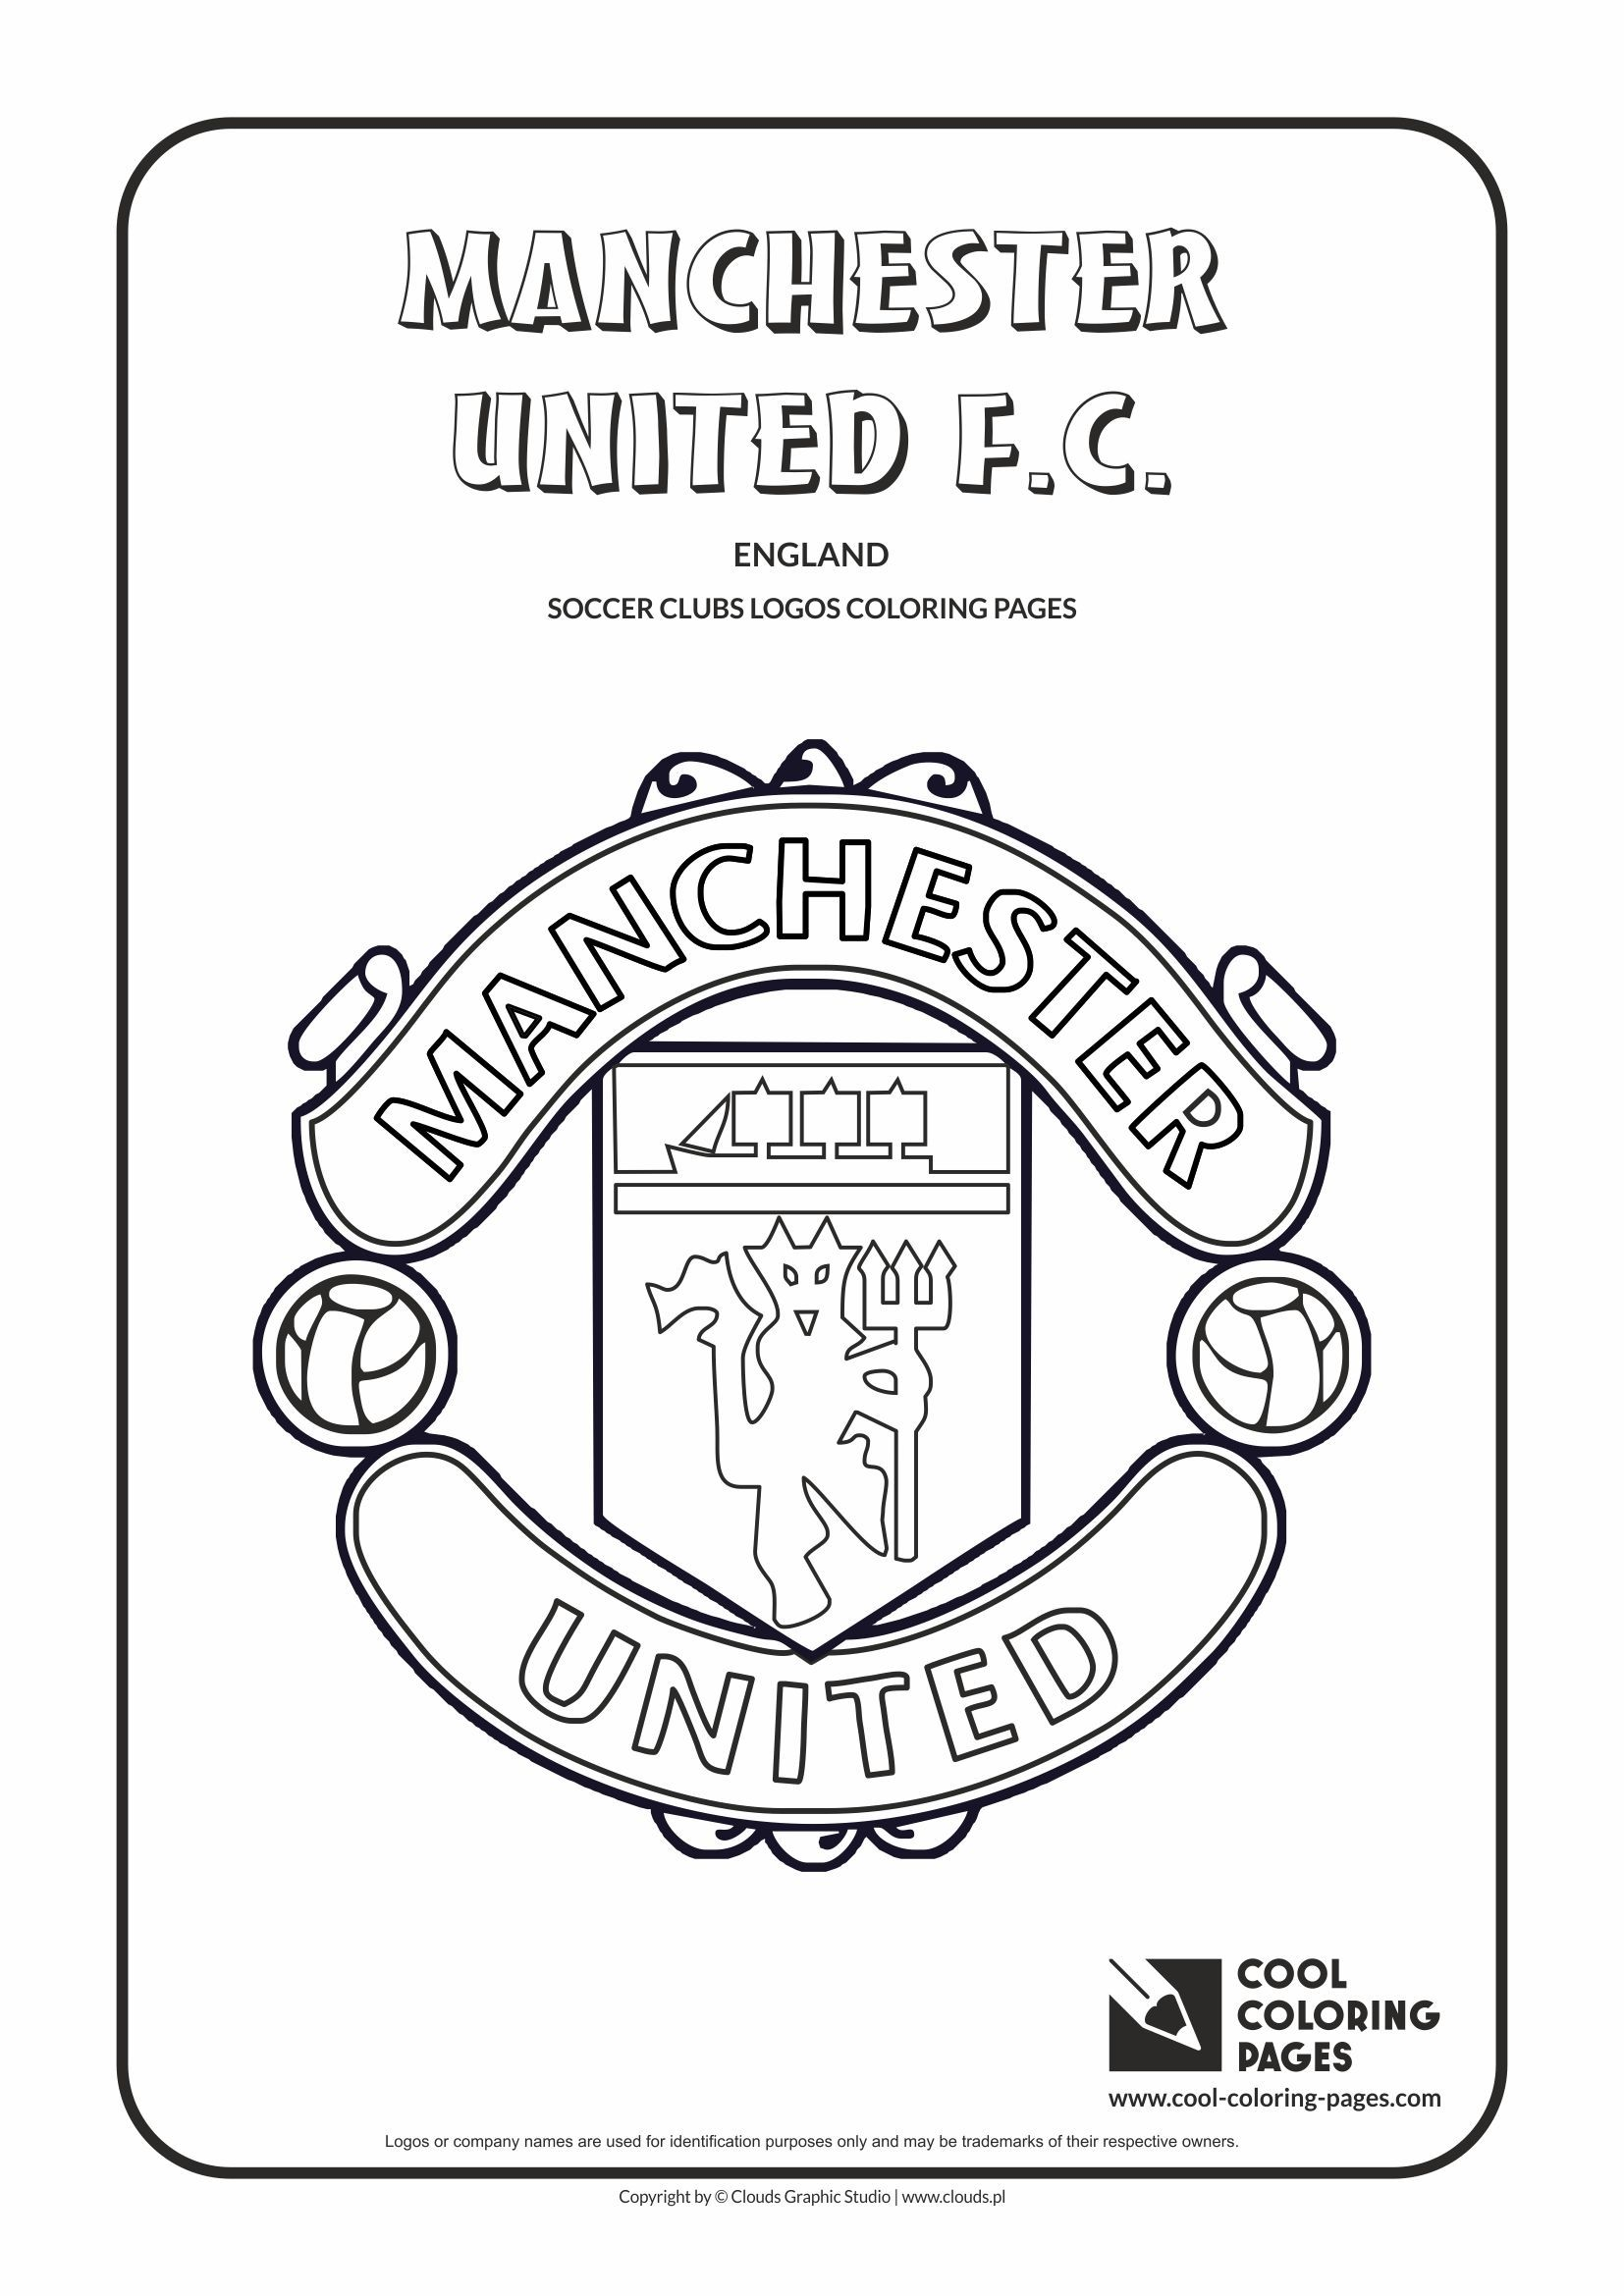 Cool Coloring Pages Soccer Club Logos Manchester United FC